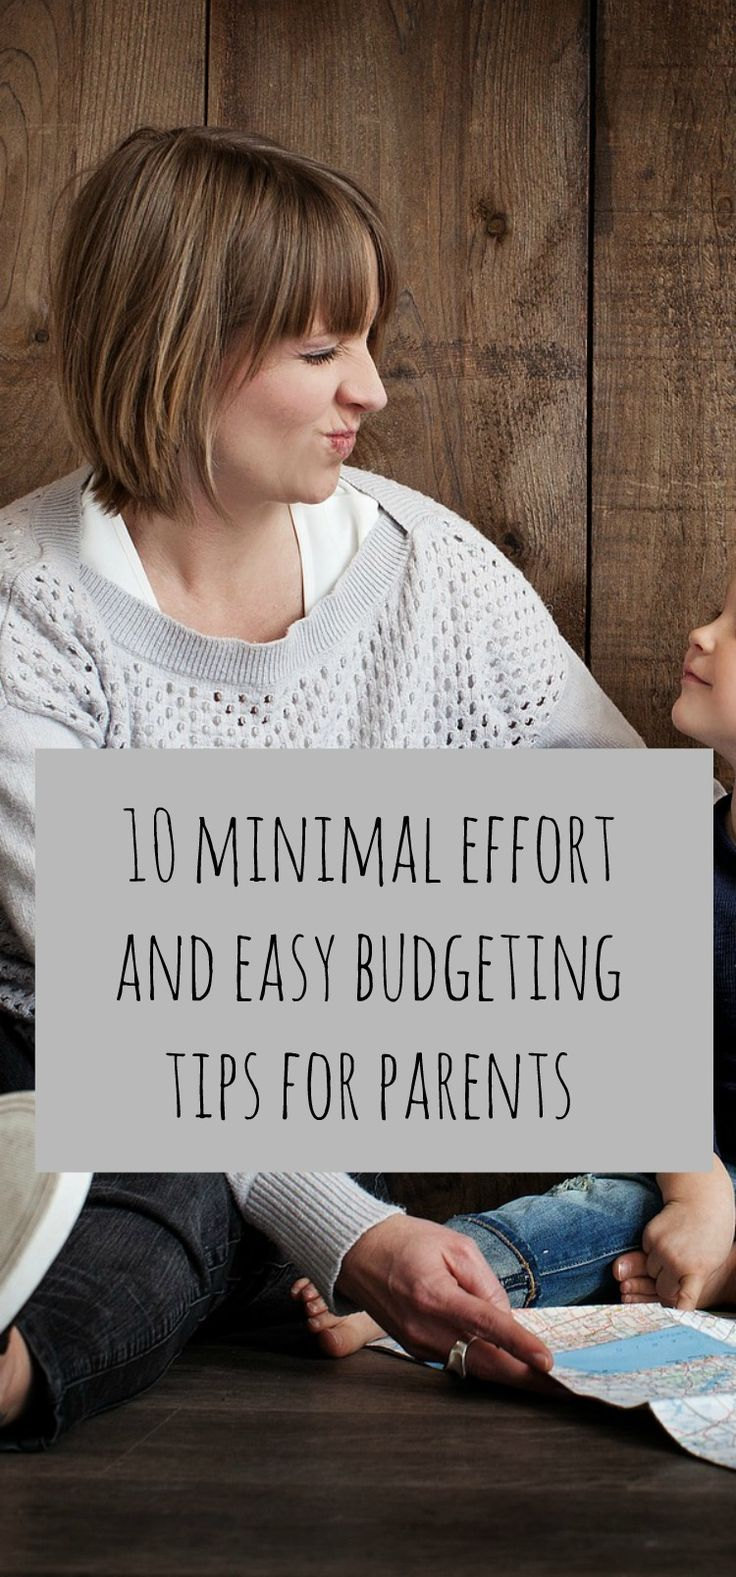 10 minimal effort and super EASY budgeting tips for parents. Family budgeting strategies and thrifty family tips to make your budget go further. Advice for frugal parenting